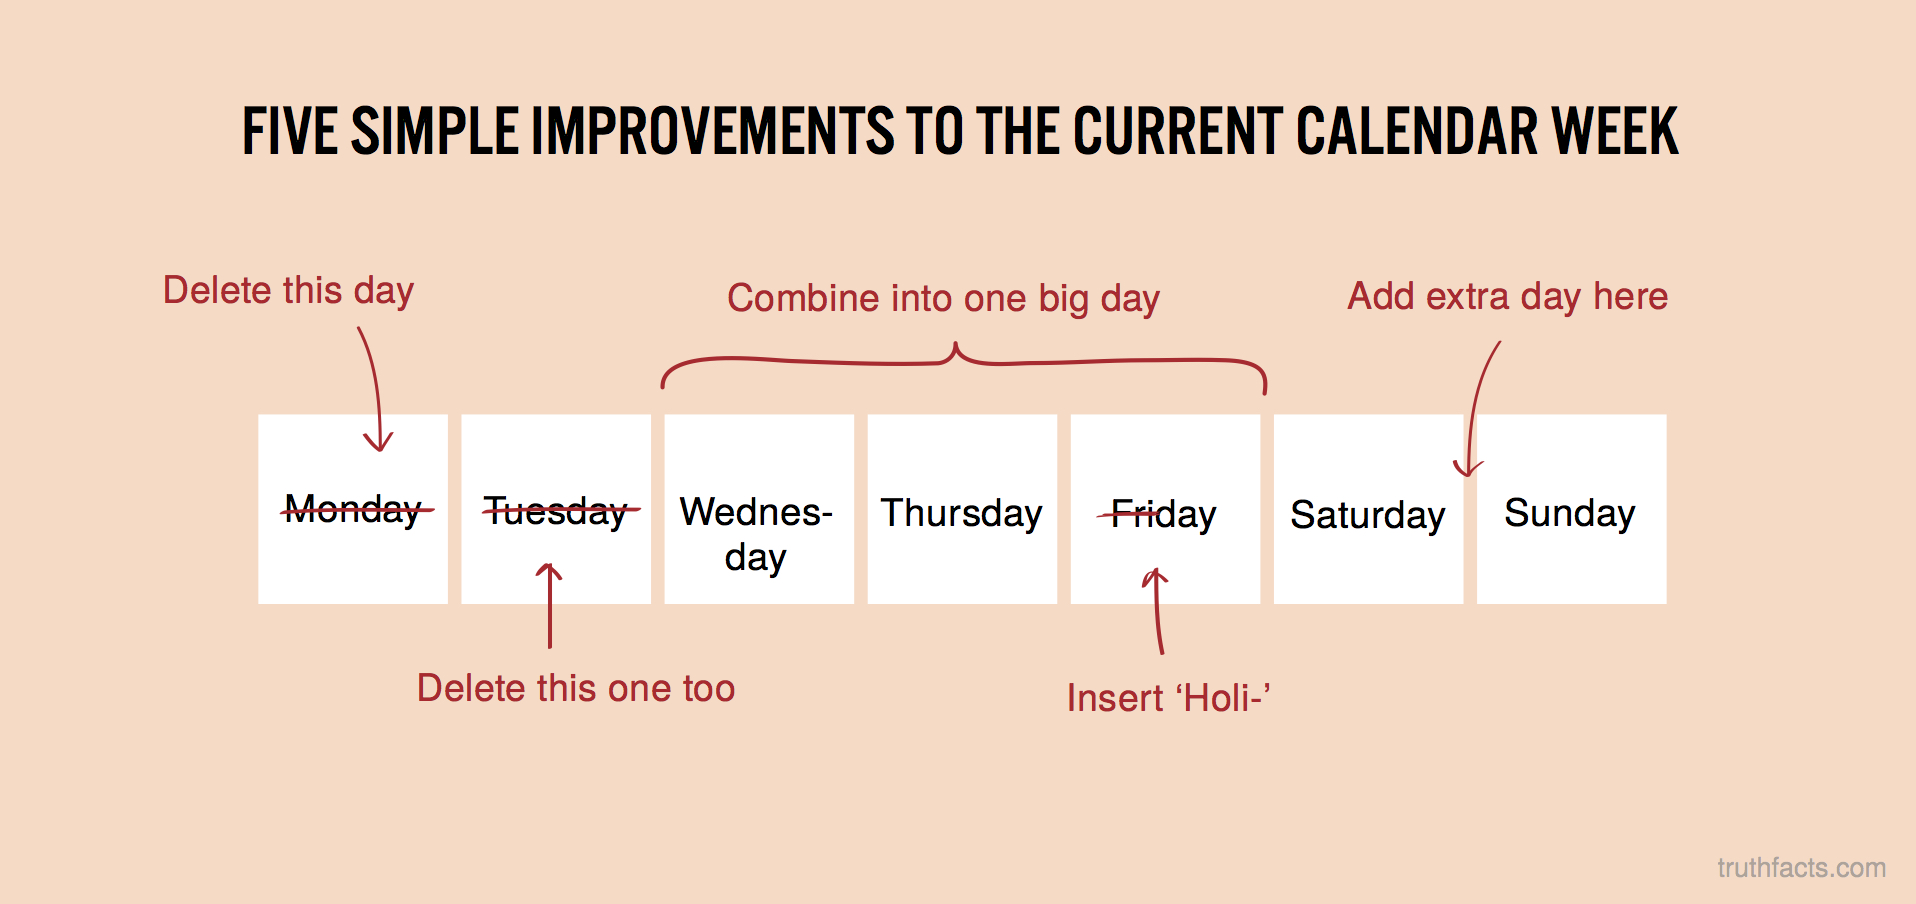 Five simple improvements to the current calendar week